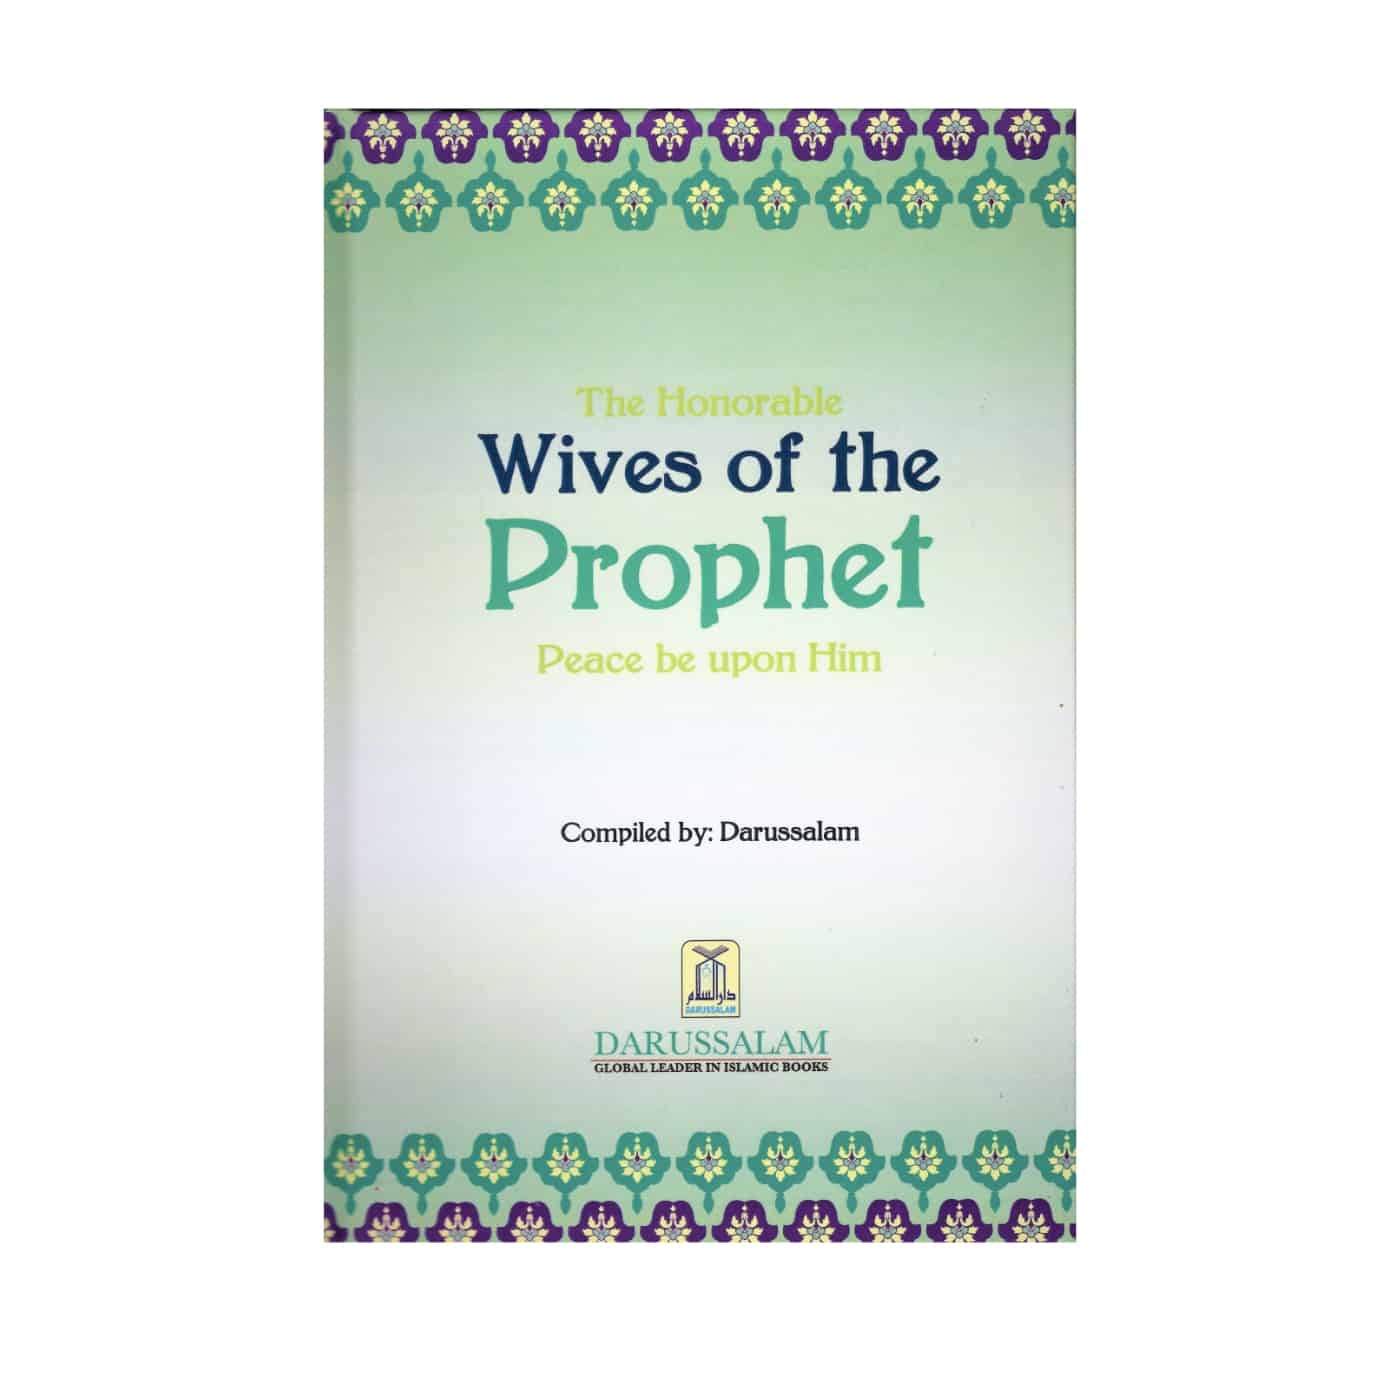 The Honorable Wives of the Prophet (Peace be upon him)